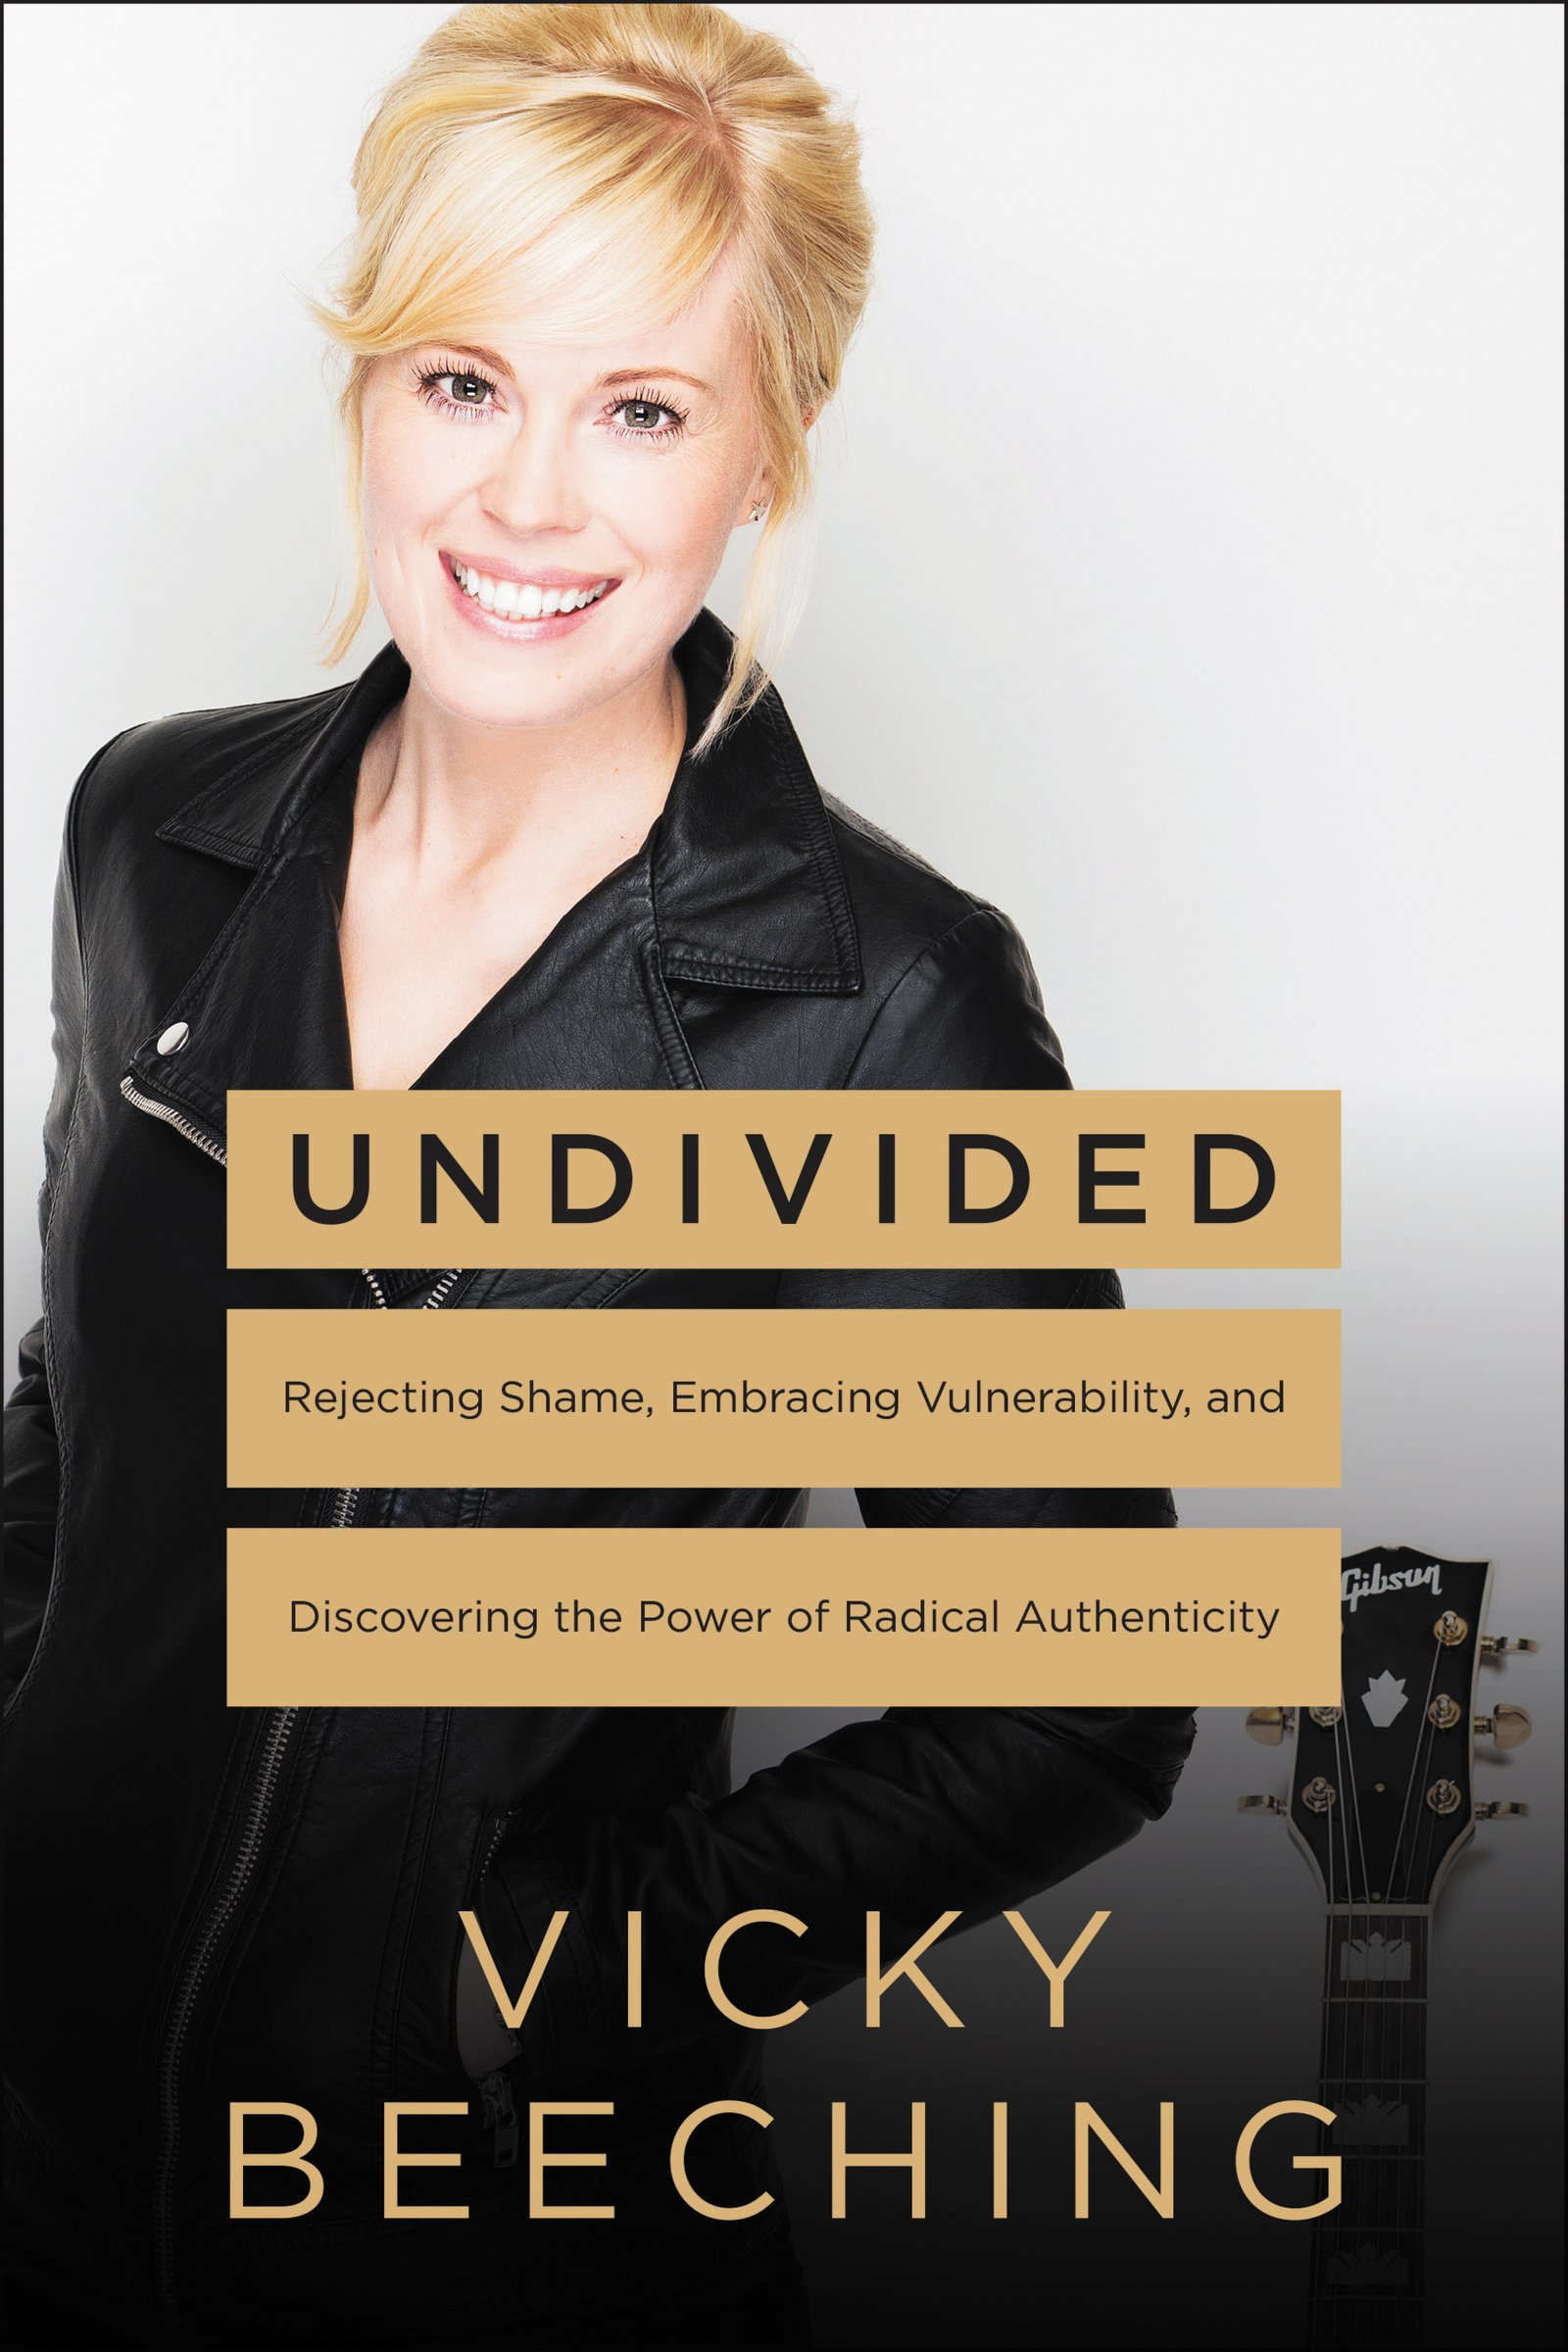 18th June 2018 – Vicky Beeching's Undivided